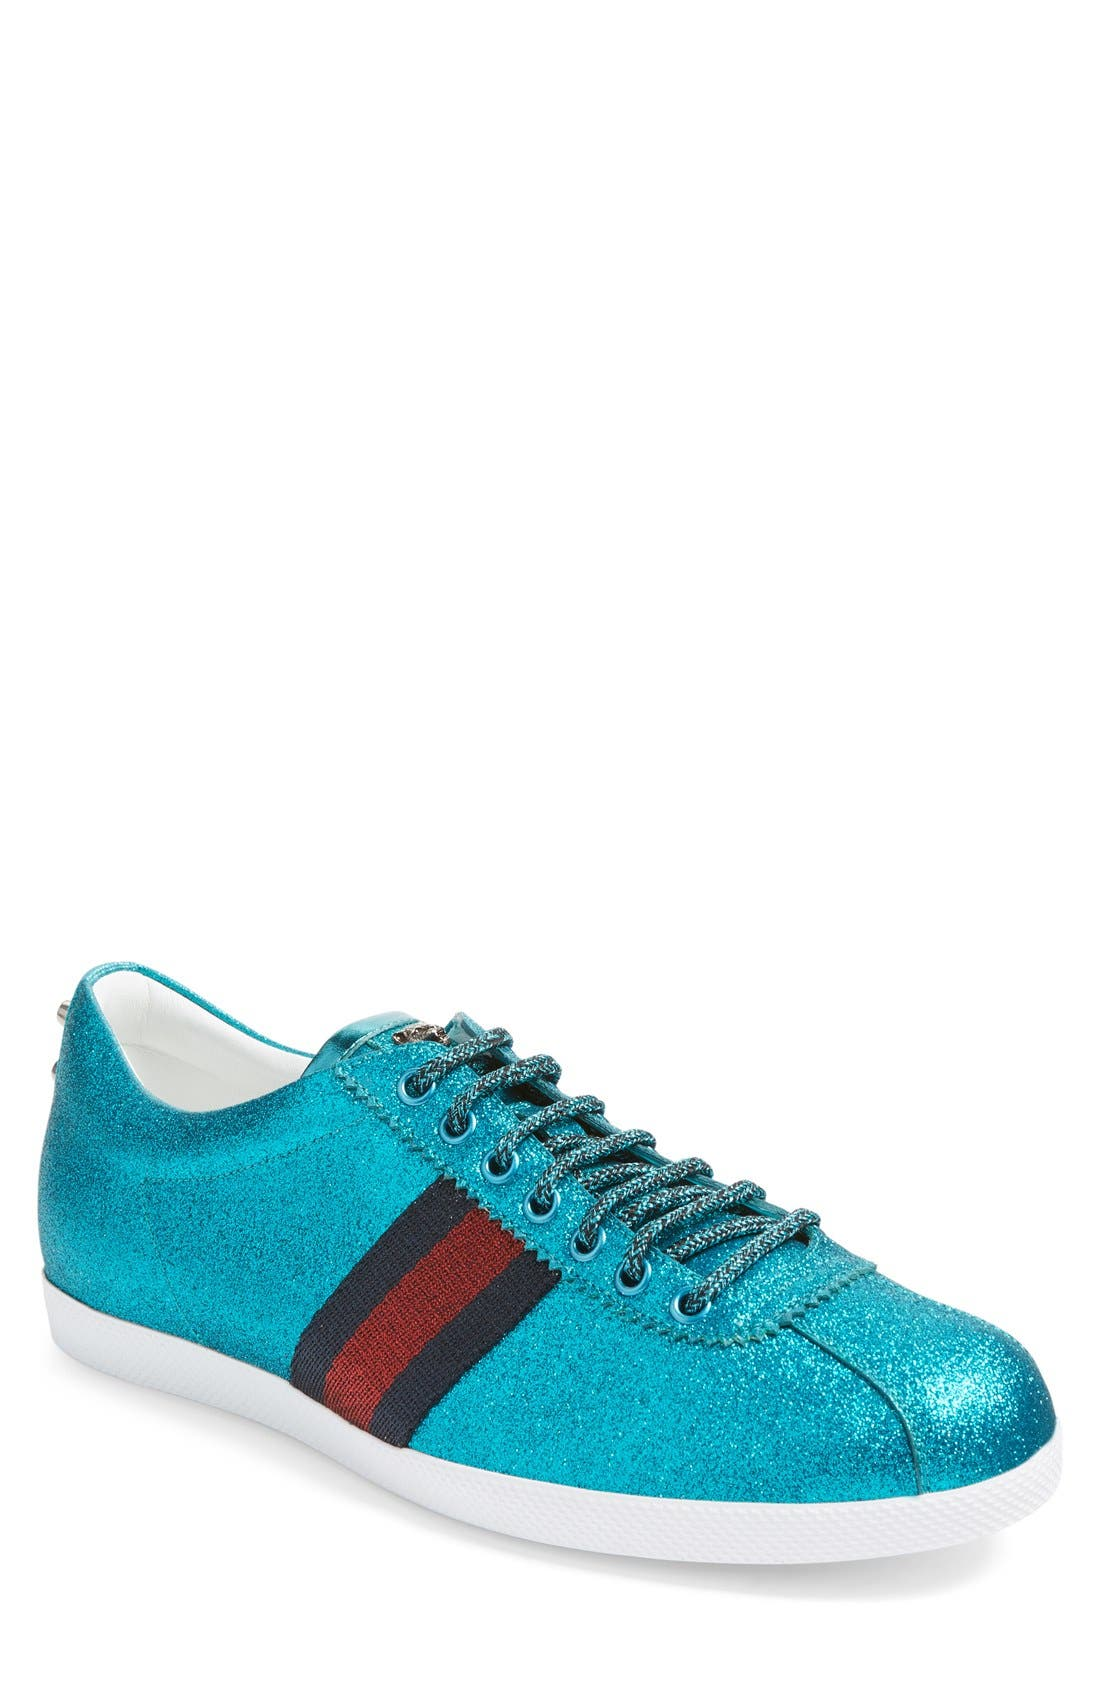 GUCCI Bambi Lace-Up Sneaker